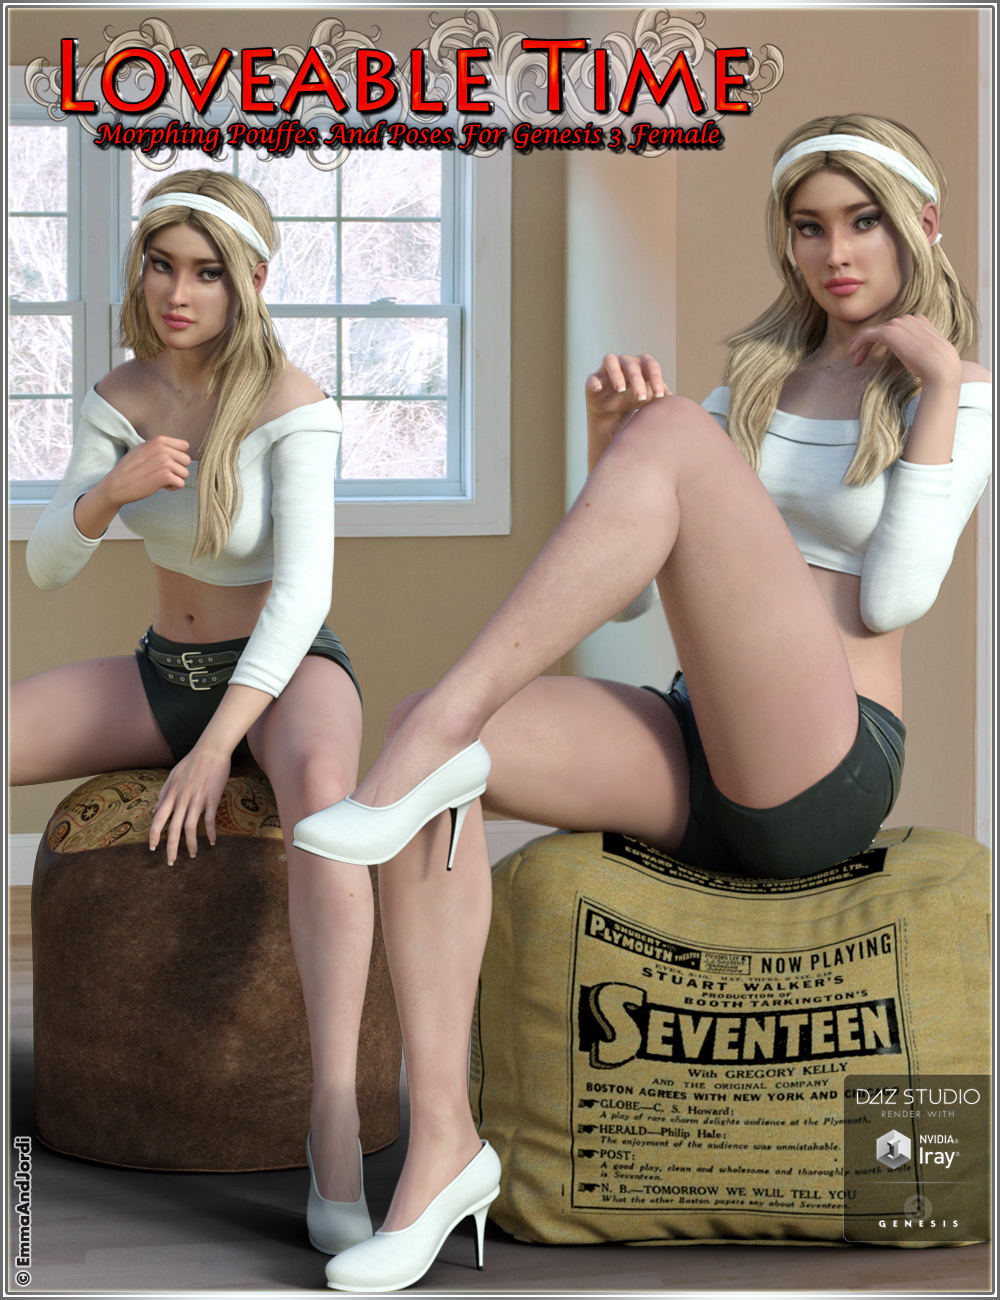 Loveable Time: Morphing Pouffes and Poses by: EmmaAndJordi, 3D Models by Daz 3D